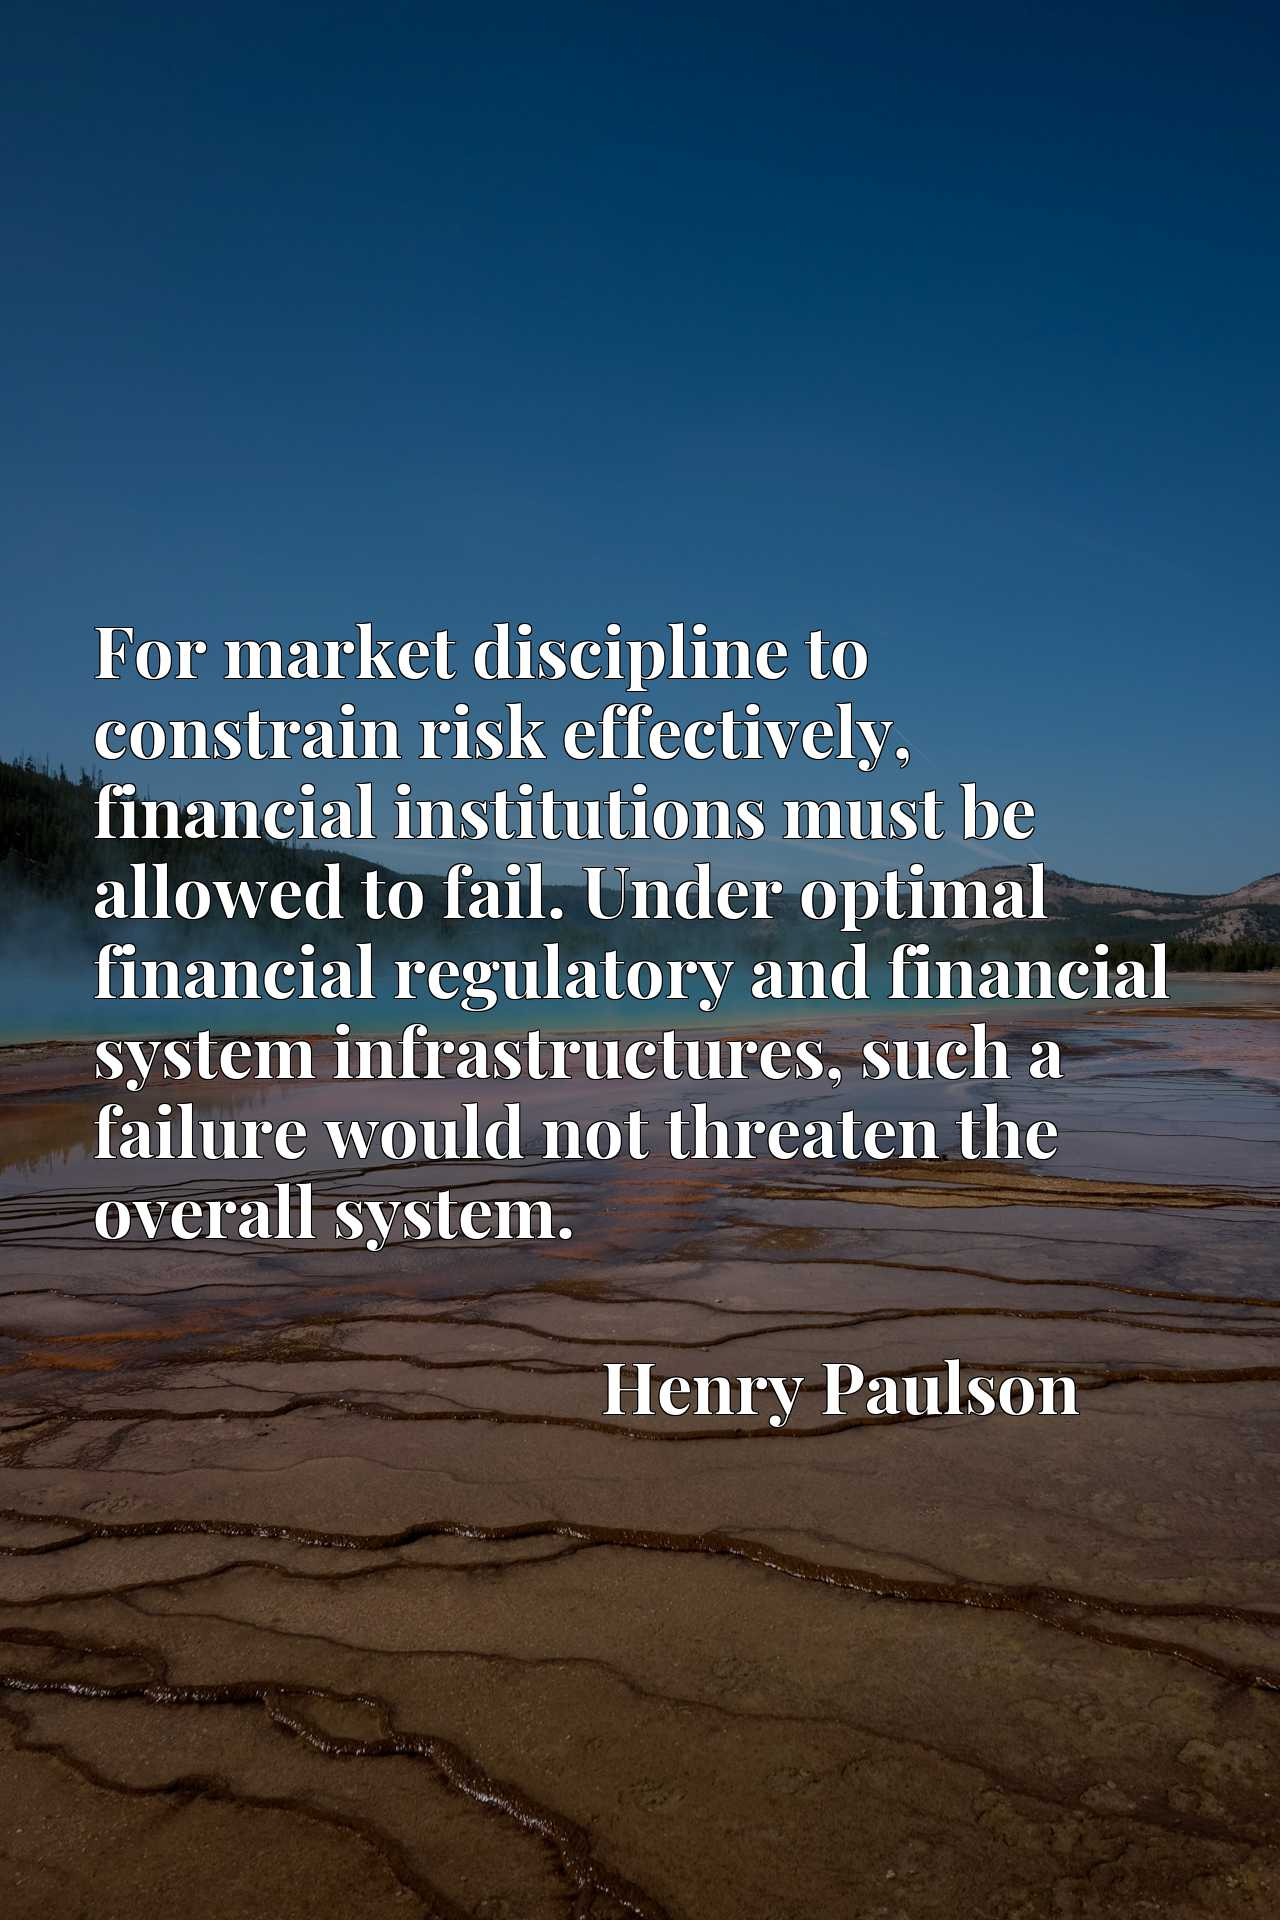 For market discipline to constrain risk effectively, financial institutions must be allowed to fail. Under optimal financial regulatory and financial system infrastructures, such a failure would not threaten the overall system.